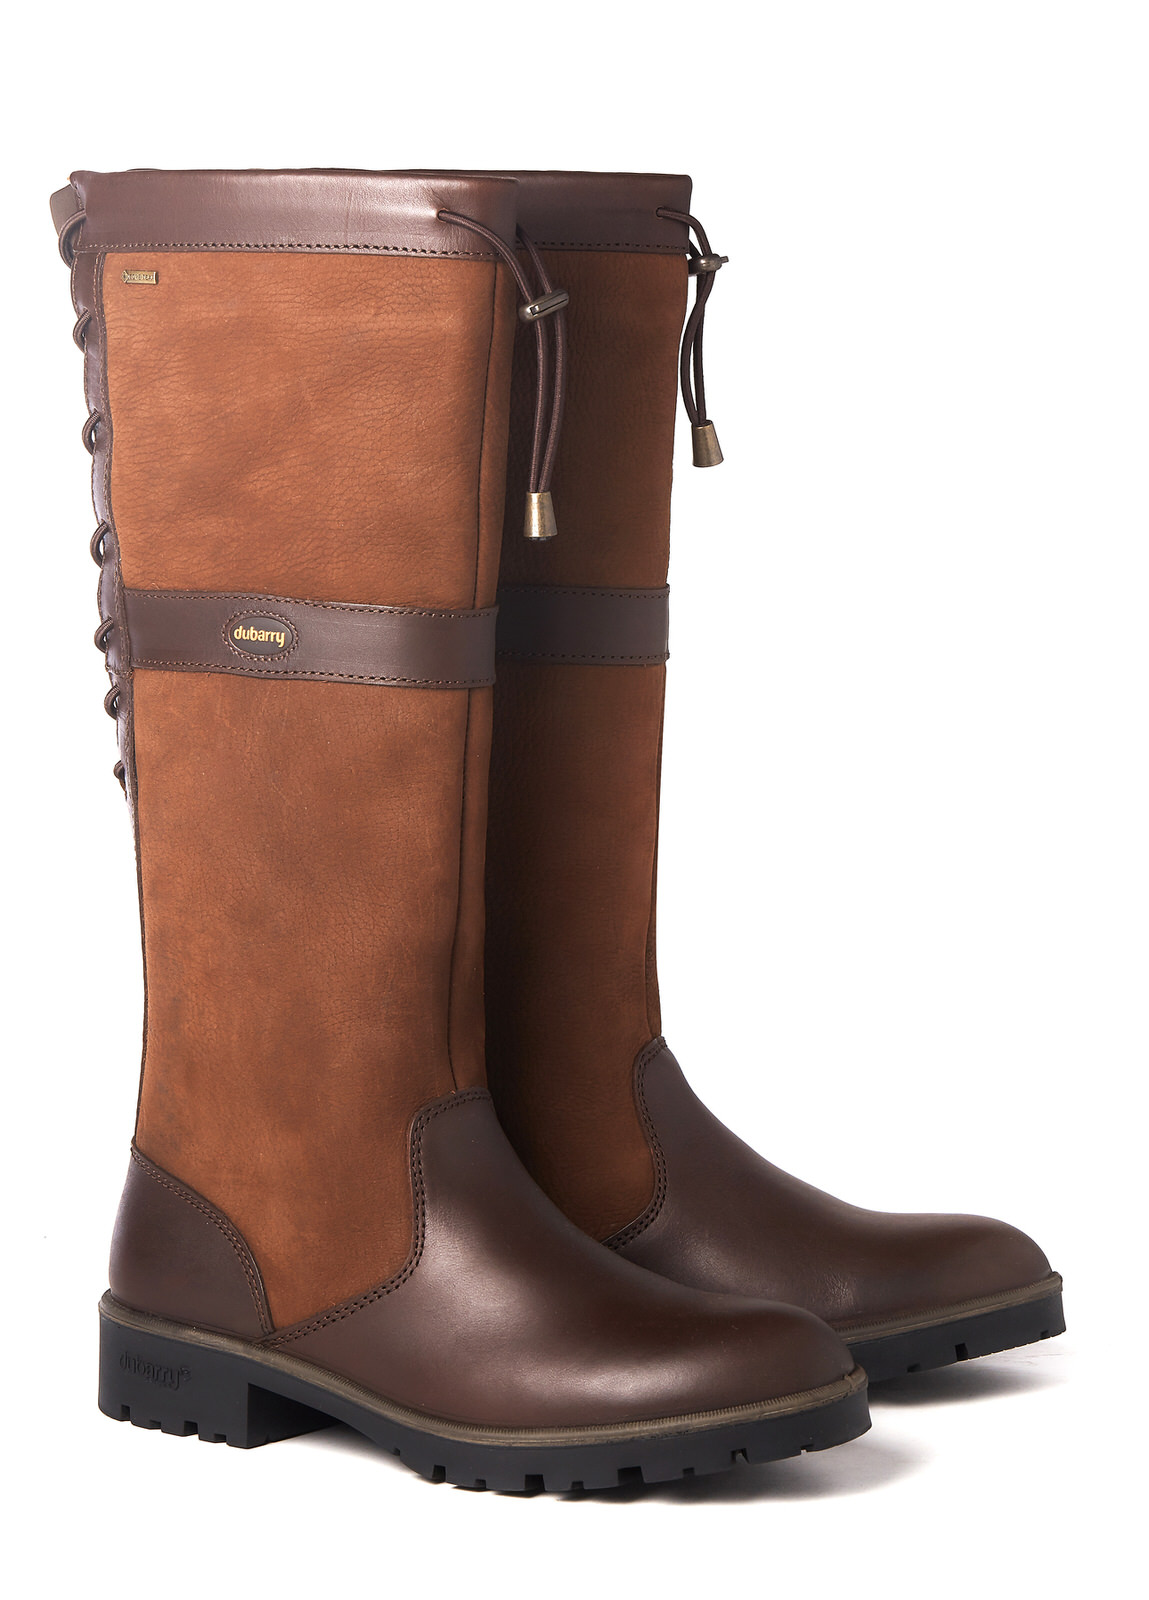 Glanmire_Country_Boot_Walnut_Image_1